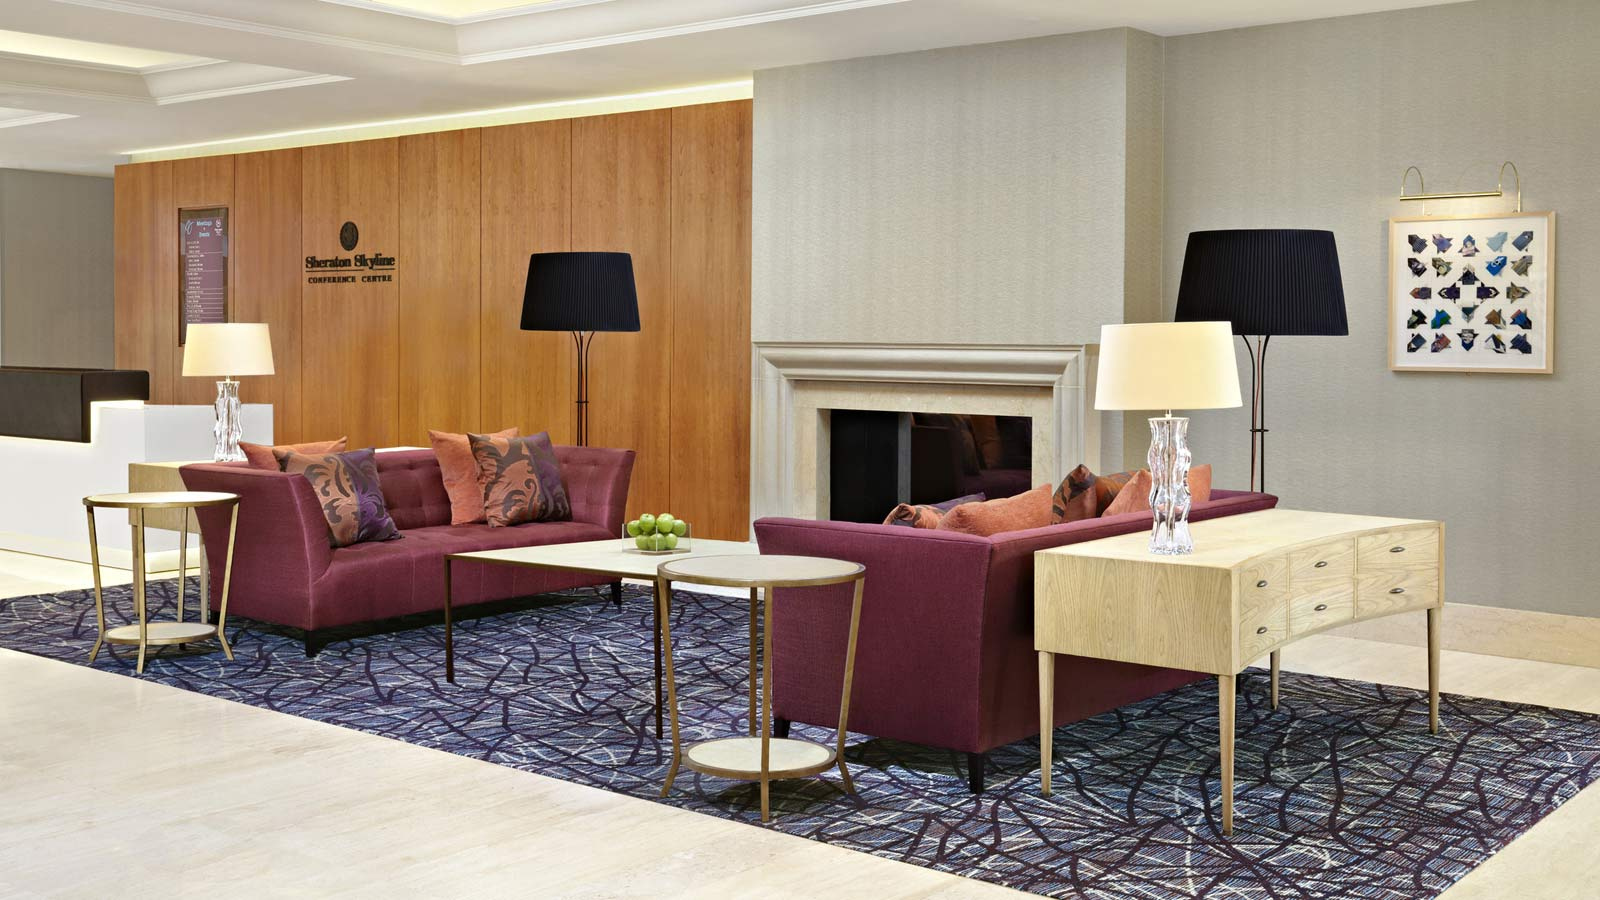 Sheraton Skyline Hotel - Meeting Packages - West London